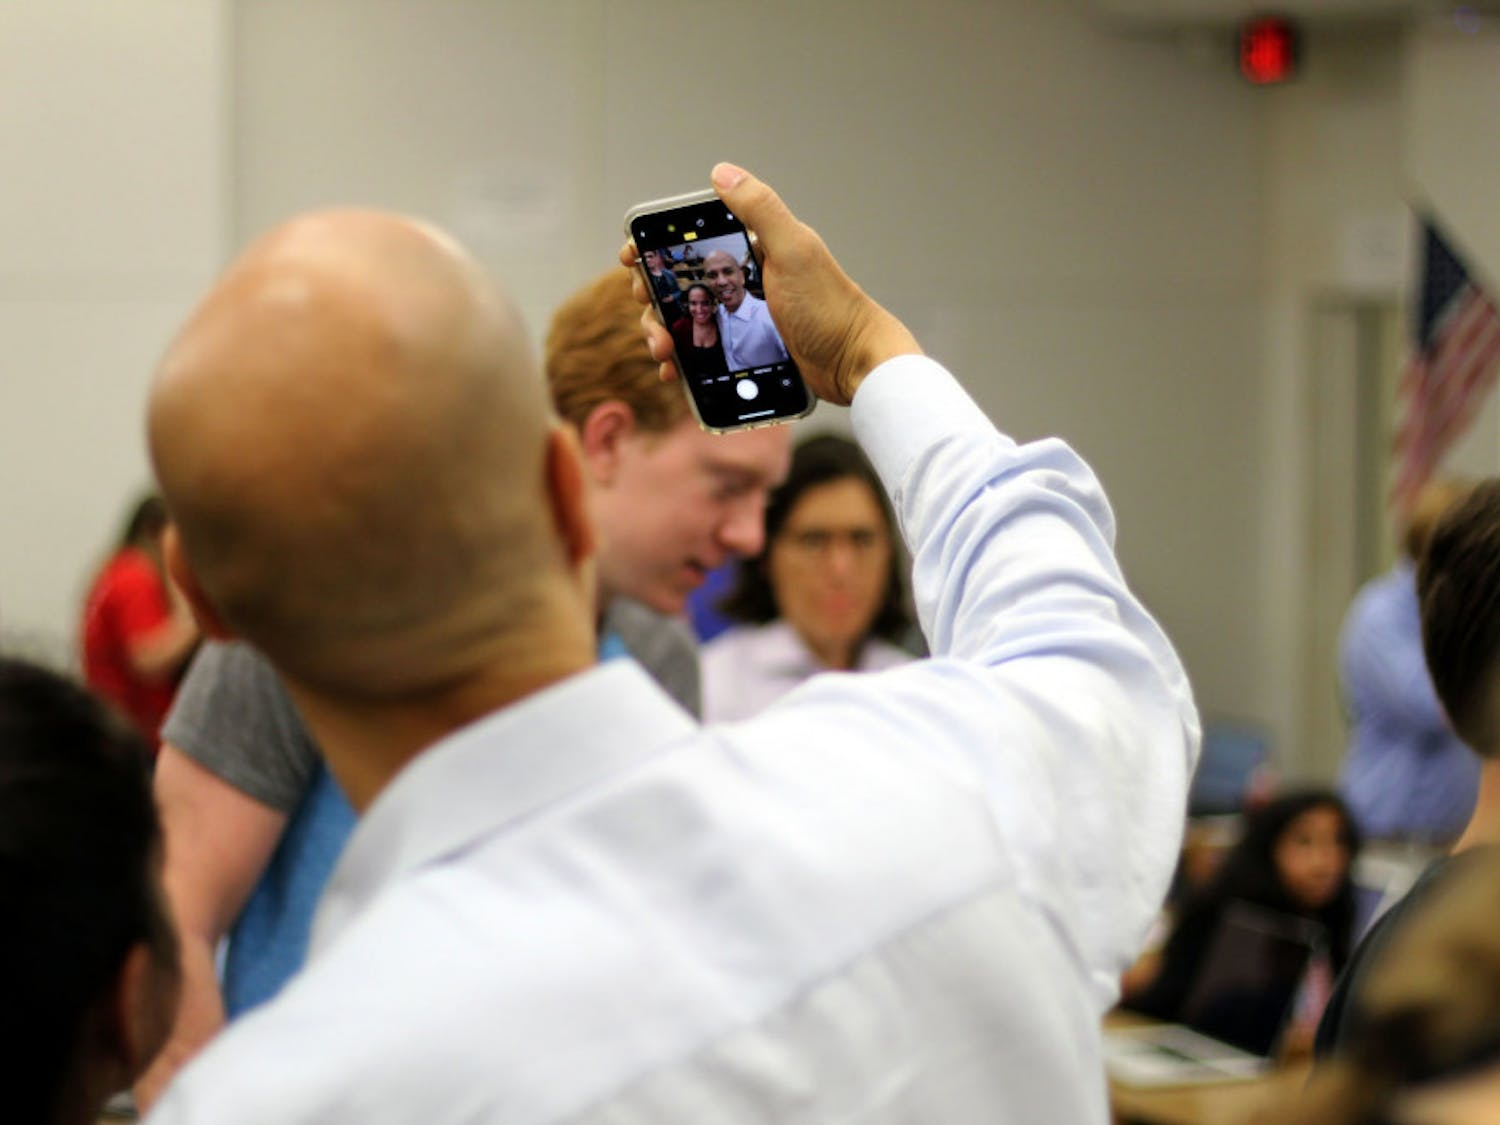 """New Jersey Senator Cory Booker and Senator Bill Nelson meet with UF College Democrats at Weil Hall on Friday afternoon. Senator Booker took selfies and posted an Instagram story of the meeting with students yelling """"Go Gators."""""""